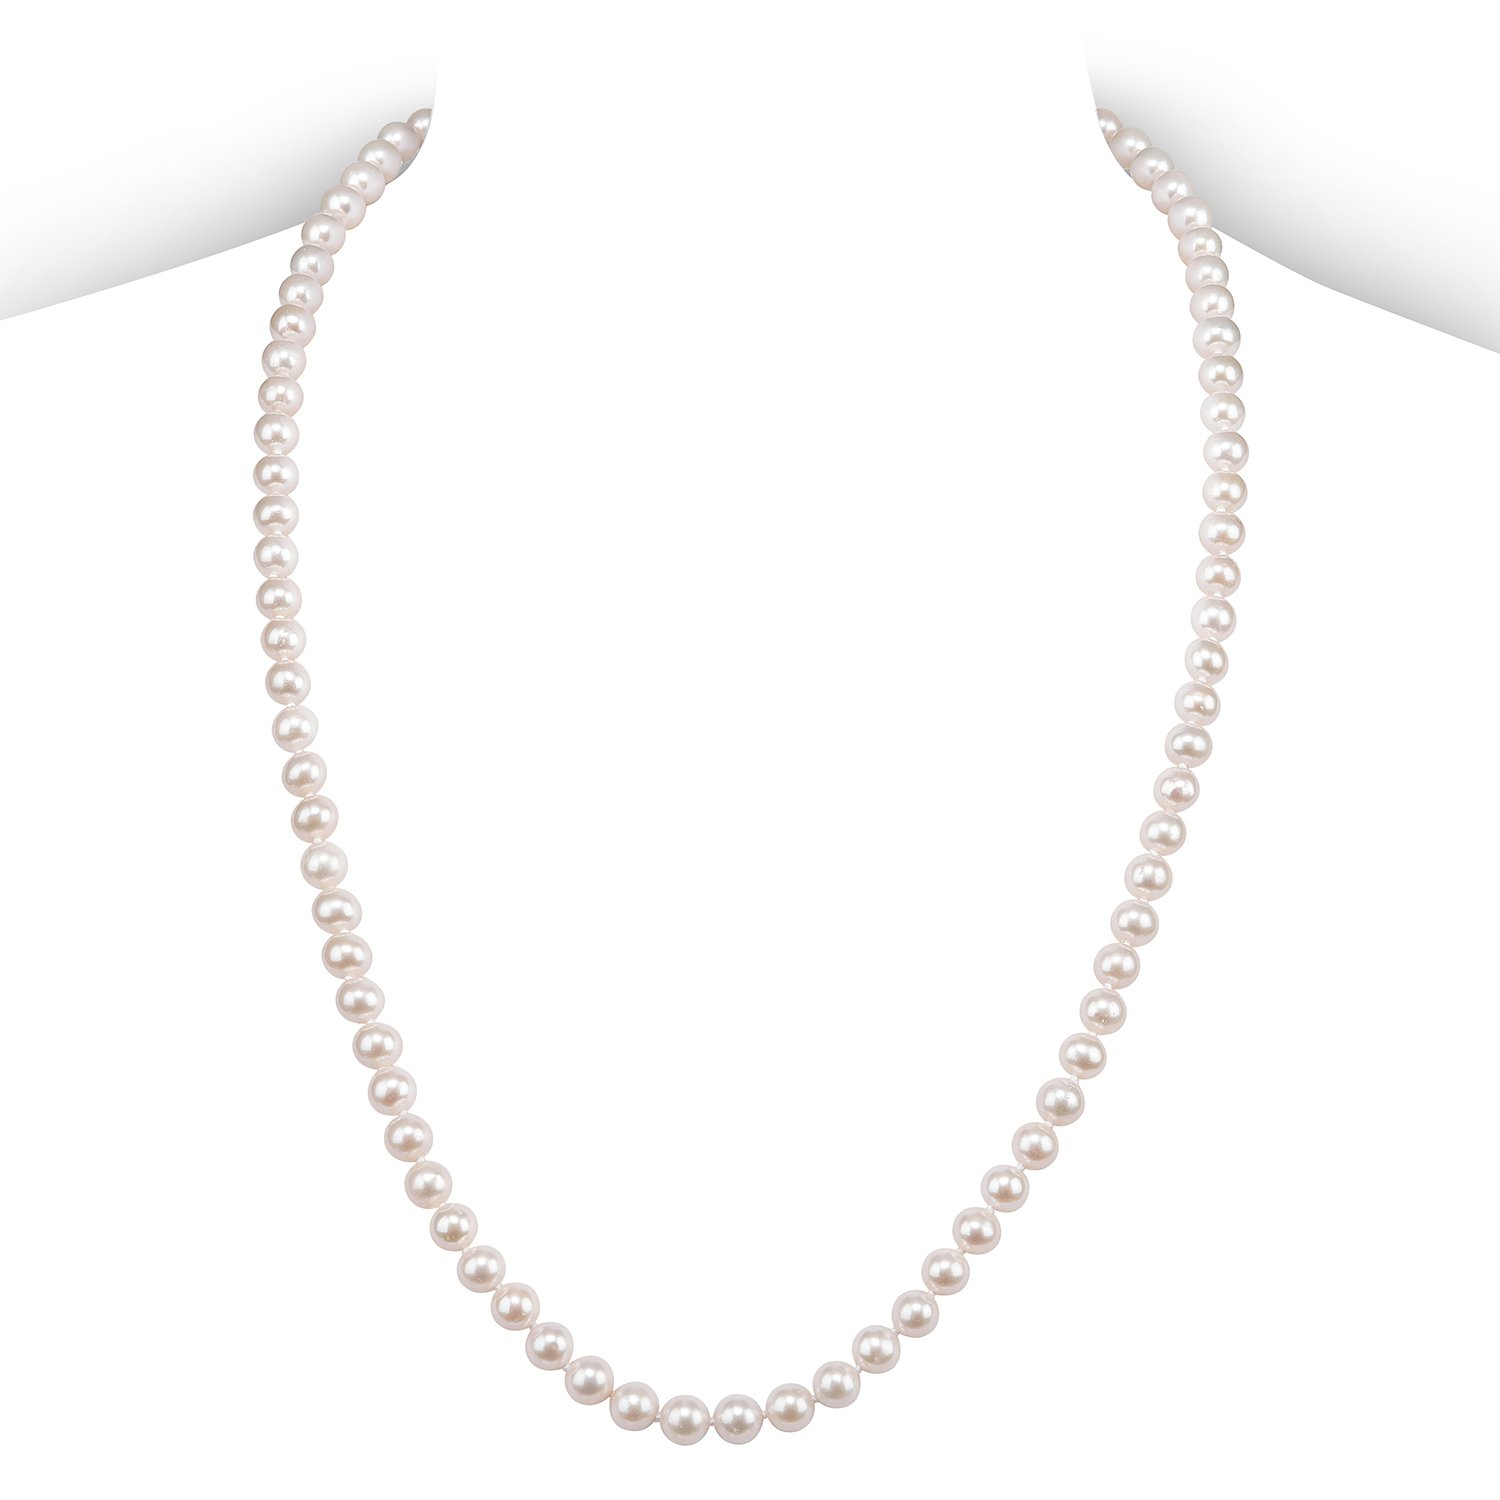 PAVOI Sterling Silver White Freshwater Cultured Pearl Necklace (24, 6mm)